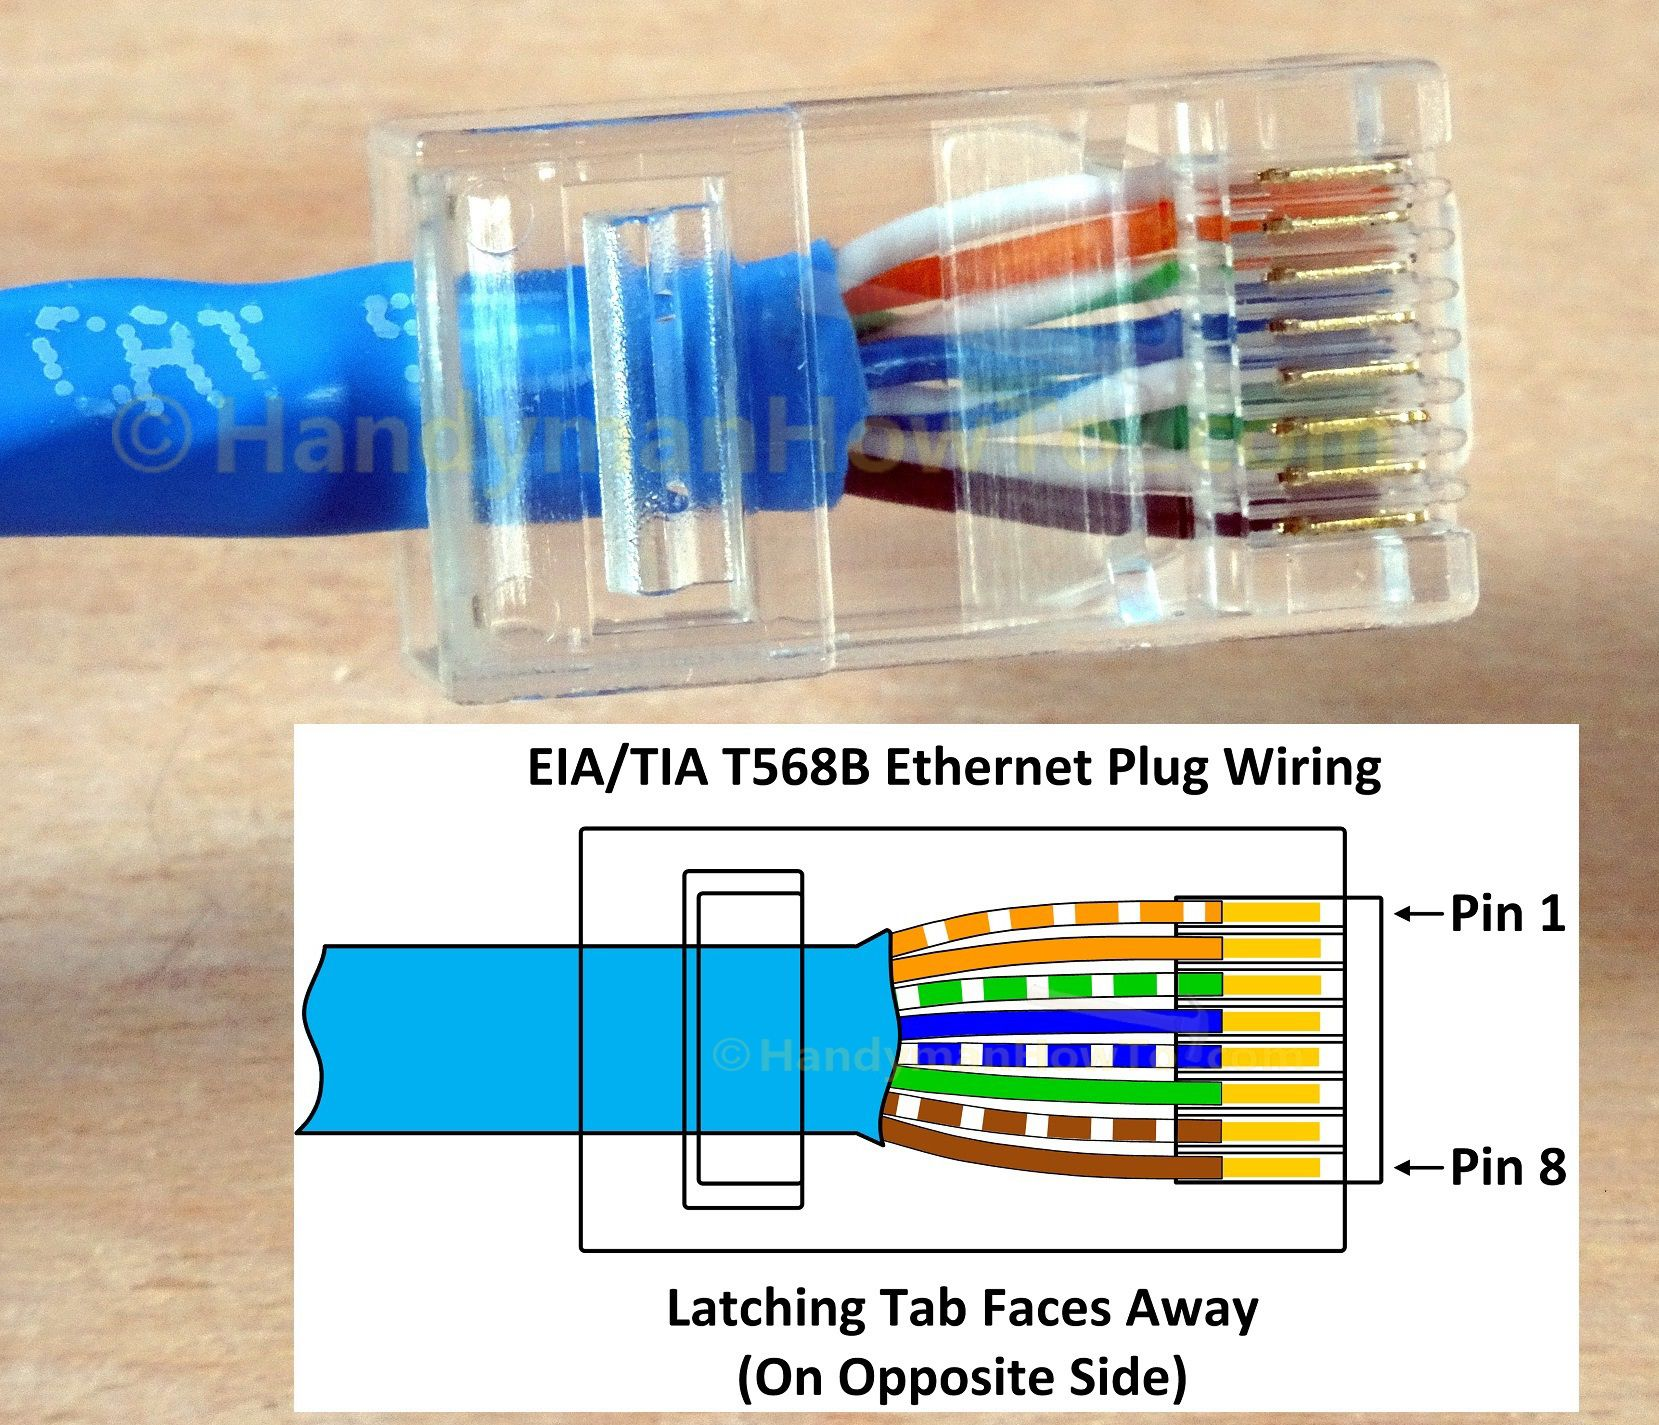 female cat 5 cable diagram rj45 ethernet plug wiring per eai-tia t568b | diy w 2019 ... #2